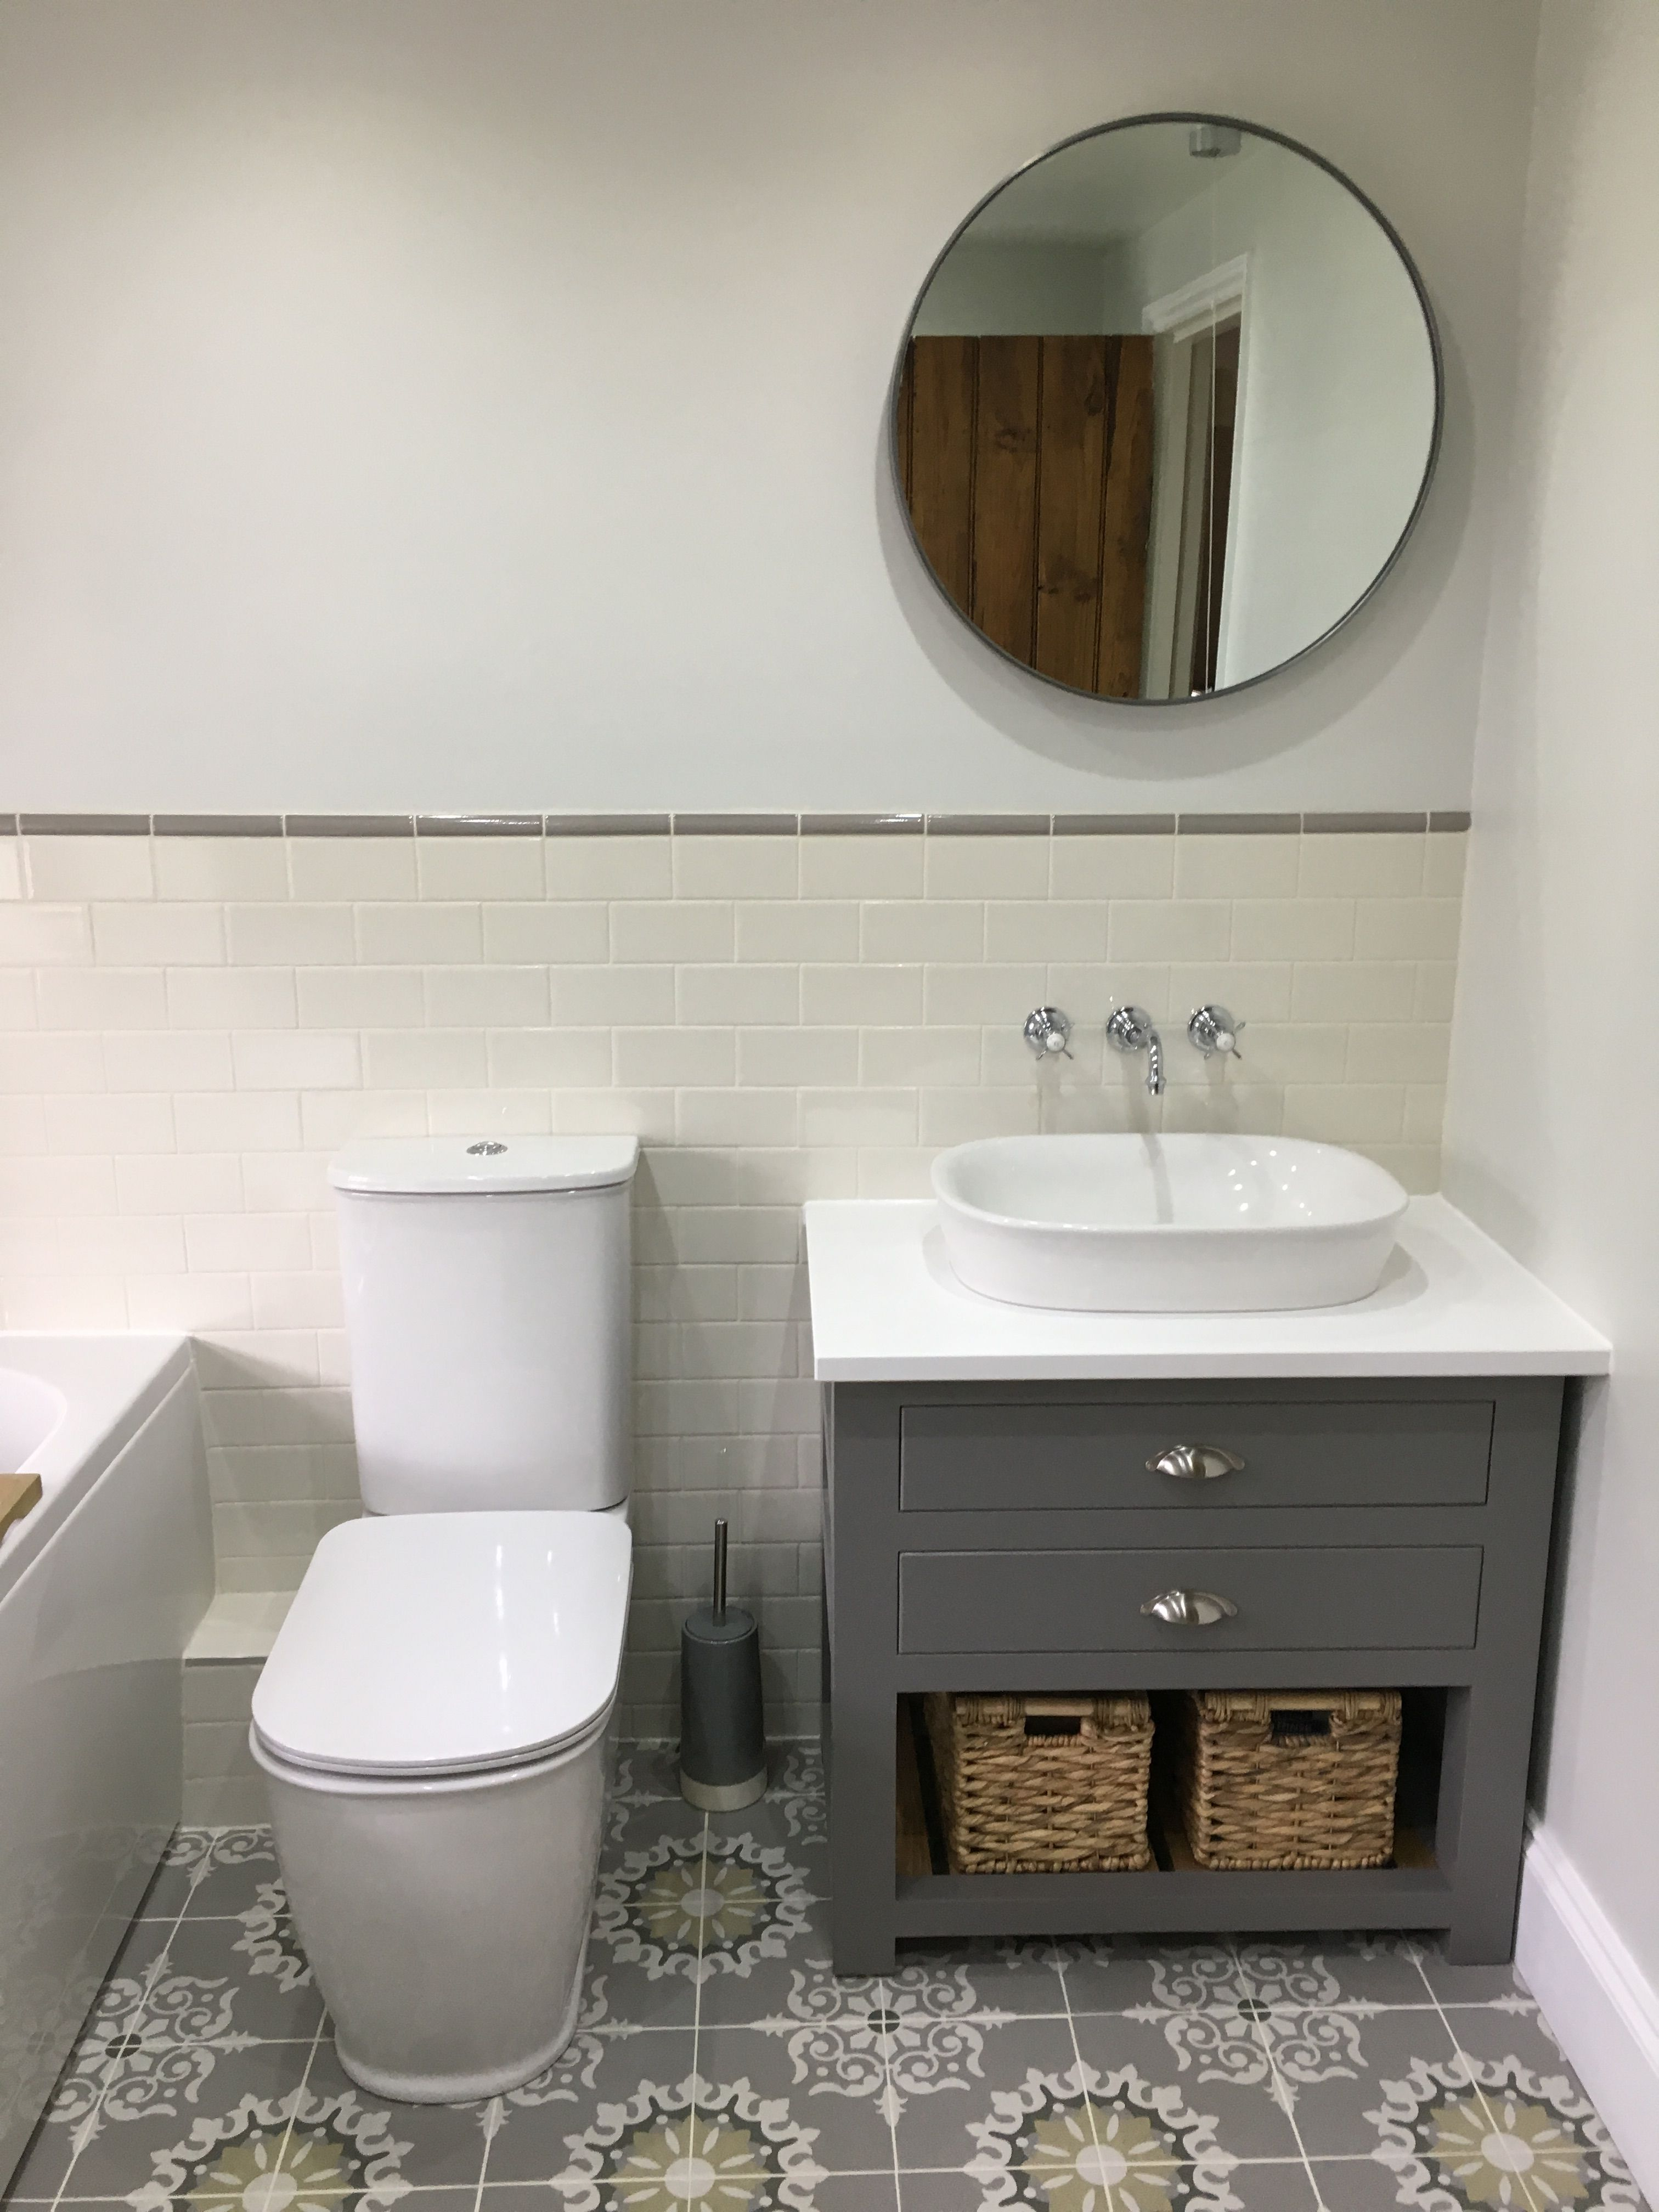 Fired earth tiles and taps, pura liberty toilet and basin. Parker